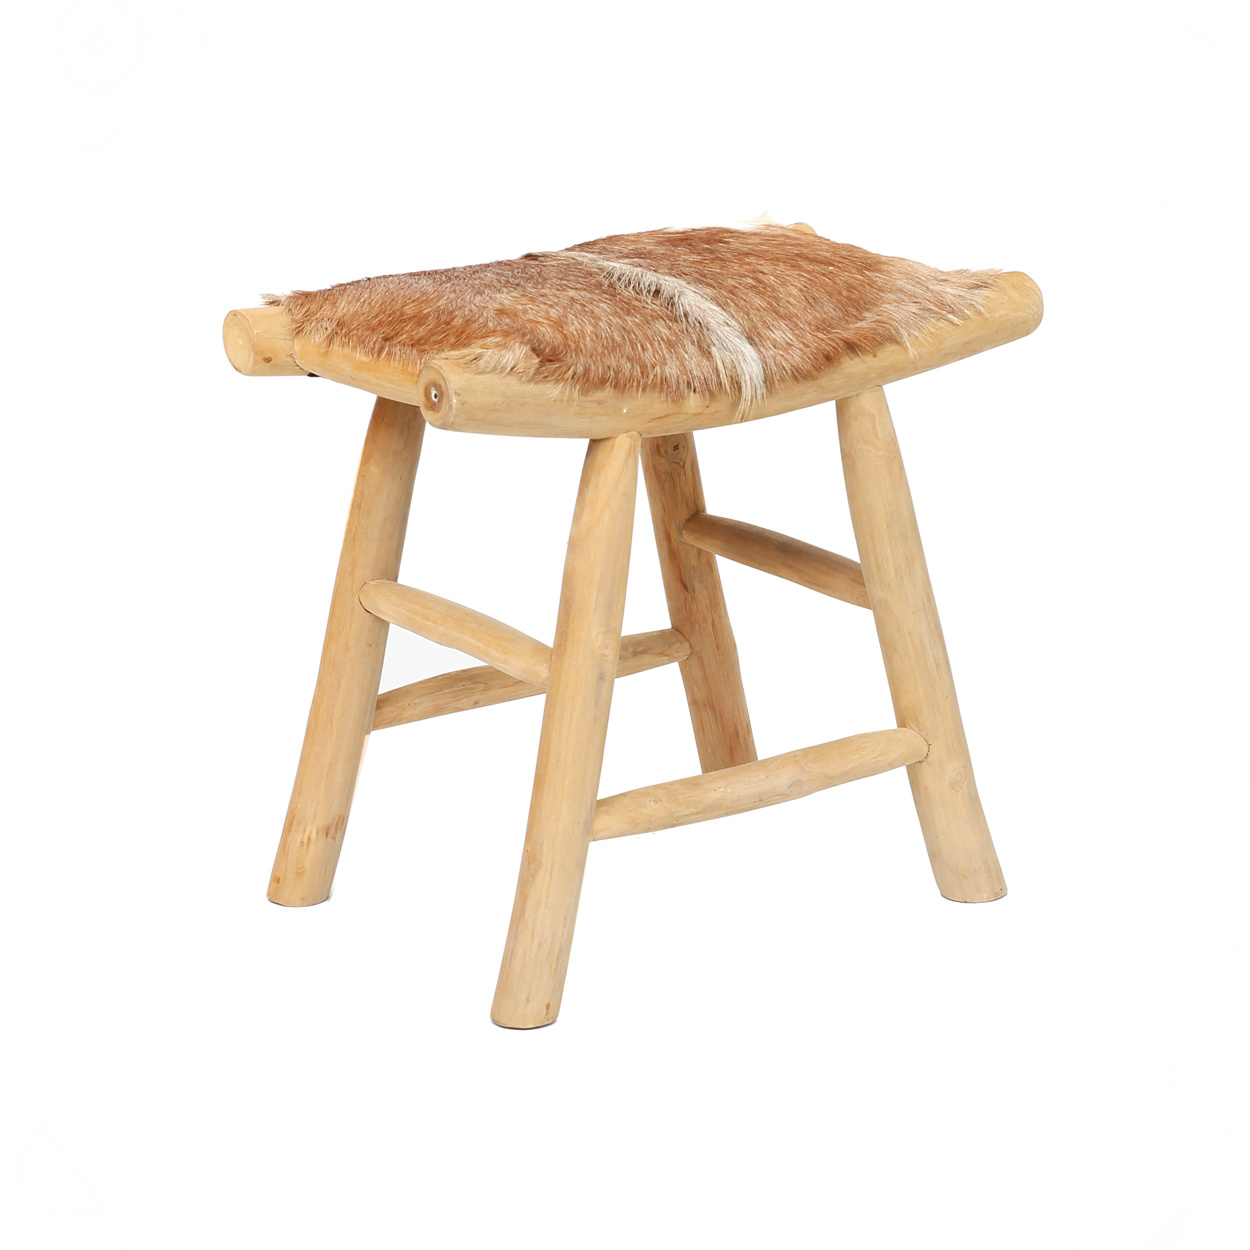 The Island Comfy Stool – Natural Brown